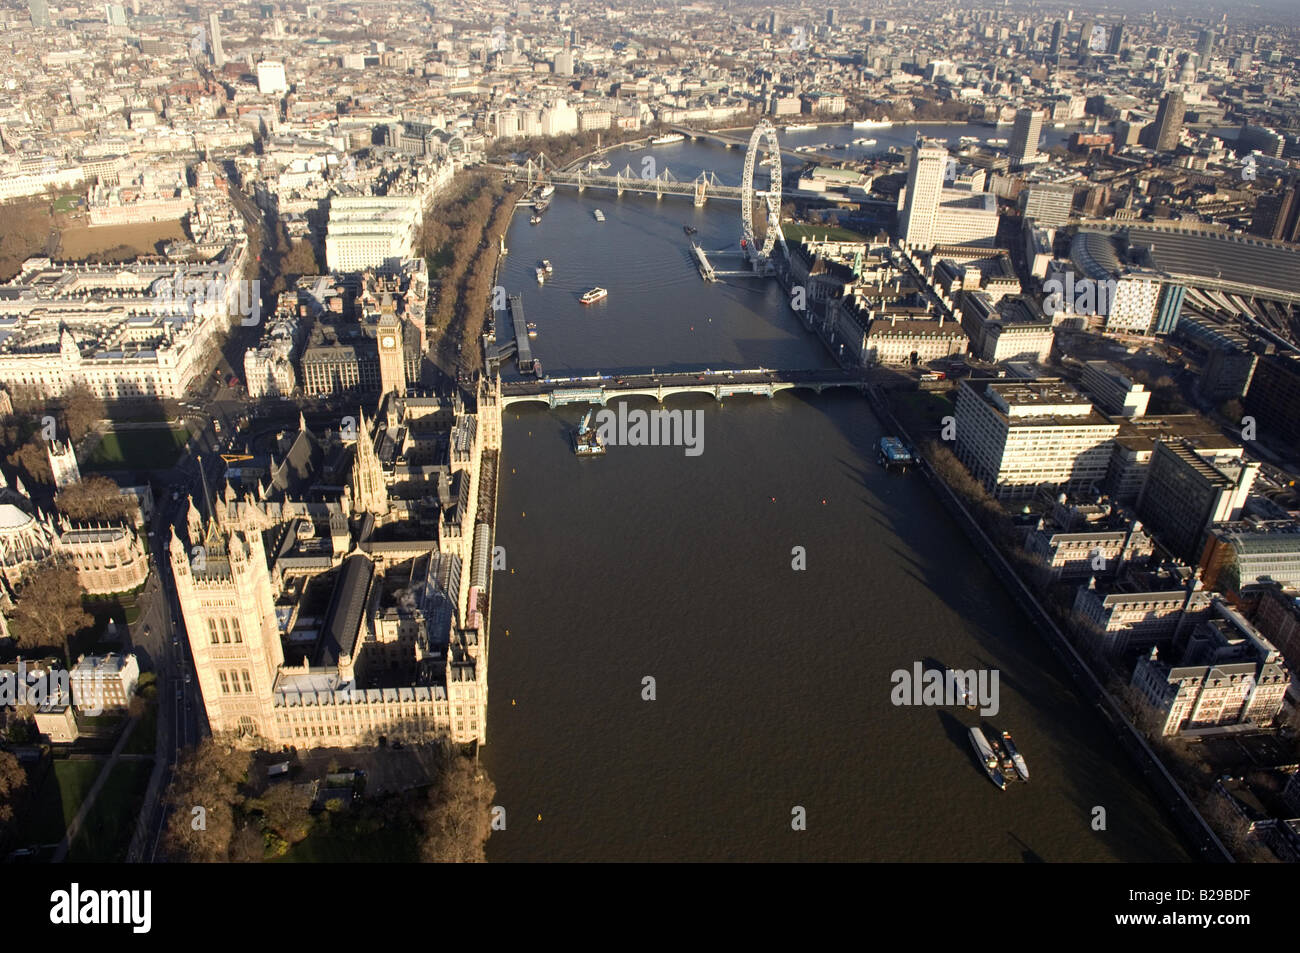 Westminster and Thames Date 12 03 2008 Ref ZB648 111149 0064 COMPULSORY CREDIT World Pictures Photoshot - Stock Image